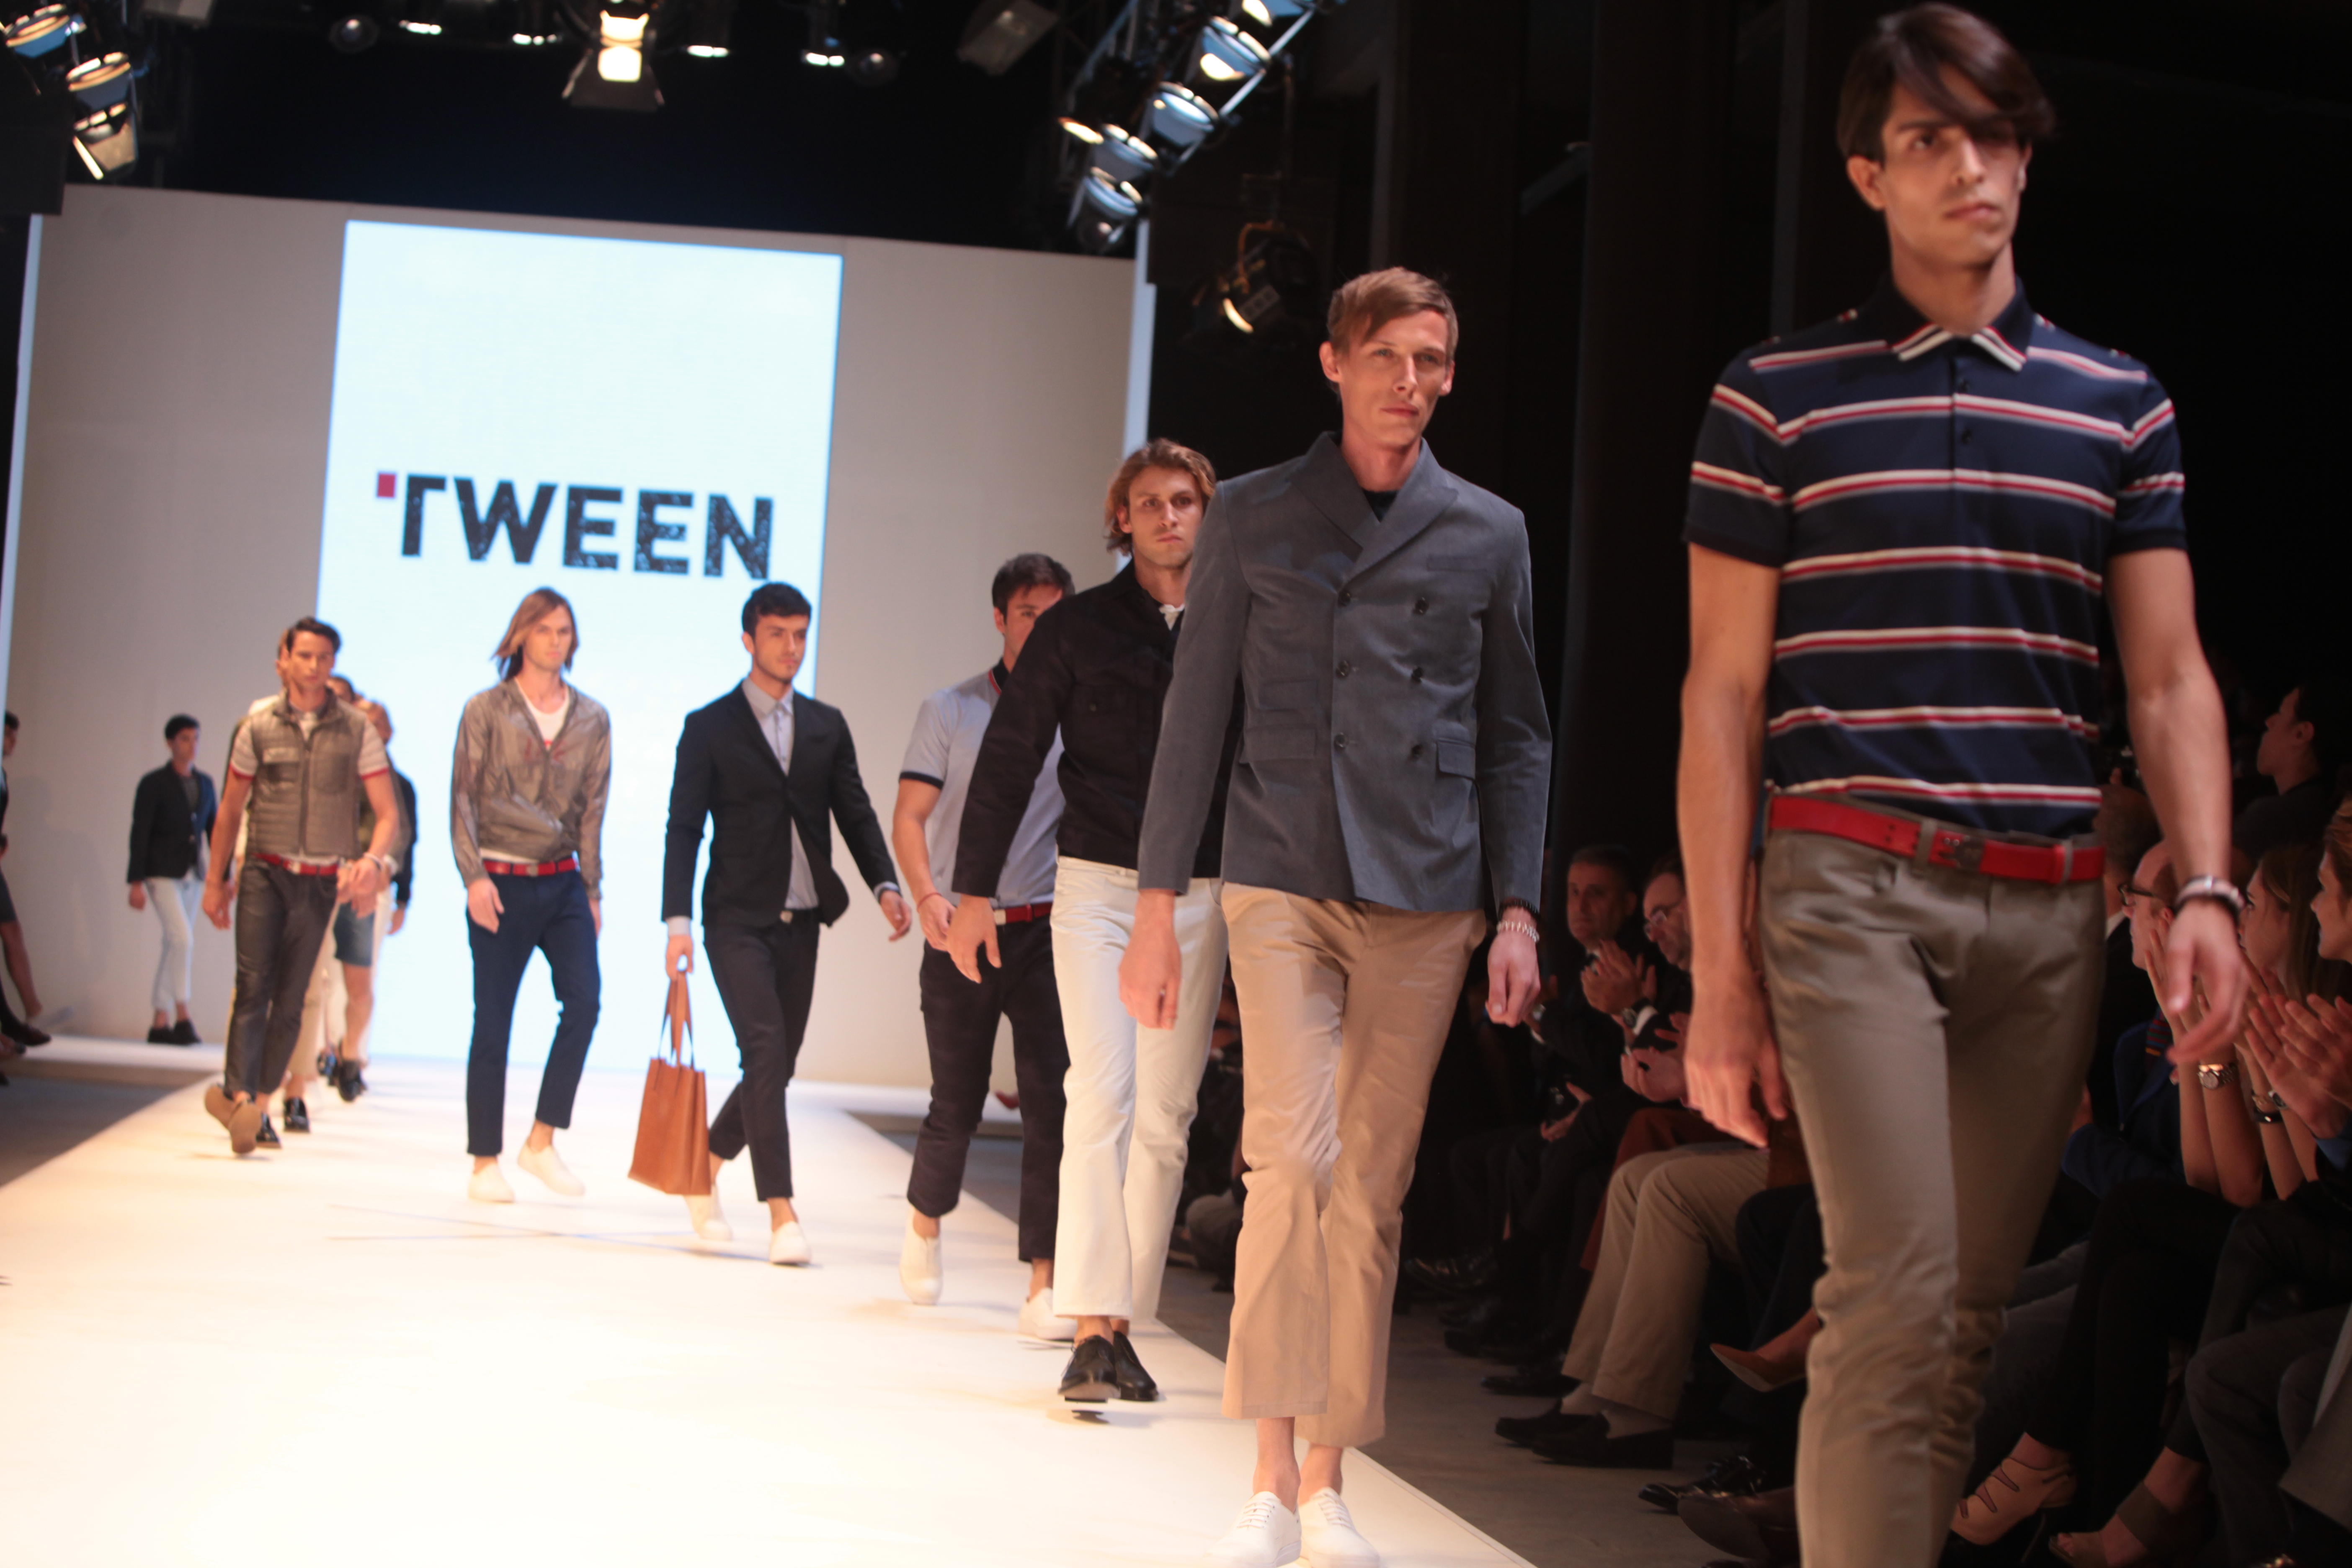 Istanbul Fashion Week with the new 'Tween.